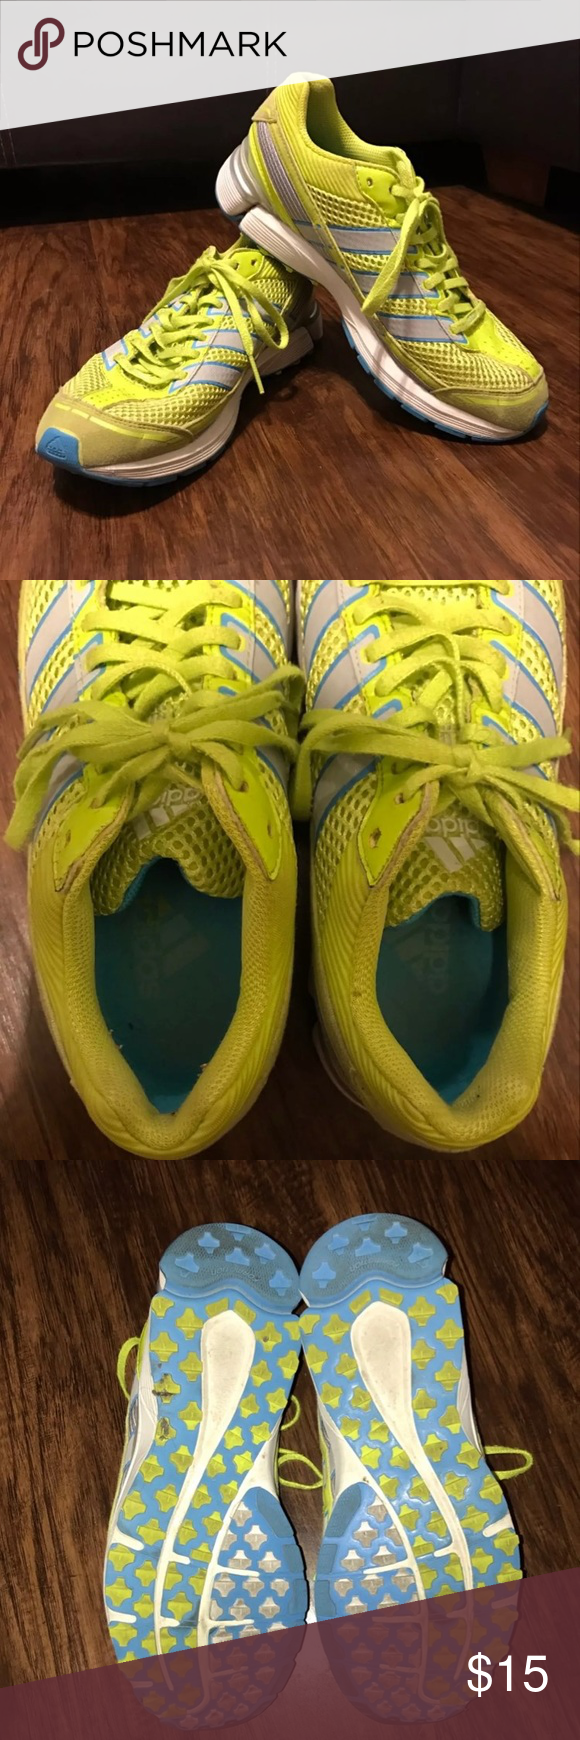 Adidas Tennis Shoes These have been loved. Some minor flaws but still in good condition. Only worn to work. Bottoms are still good and not worn down. adidas Shoes Athletic Shoes